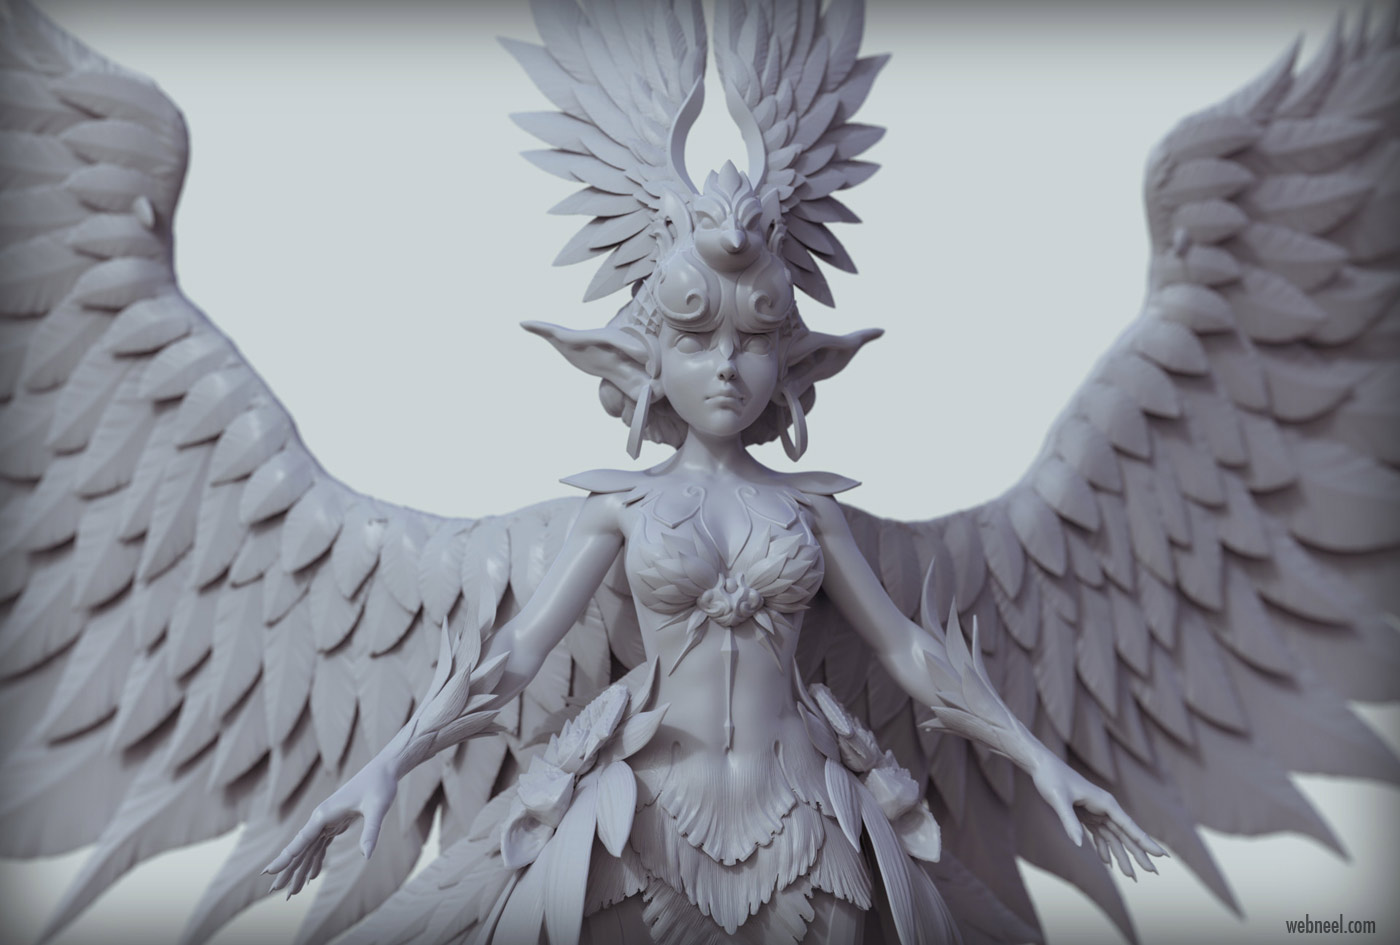 3d model character design fantasy angel